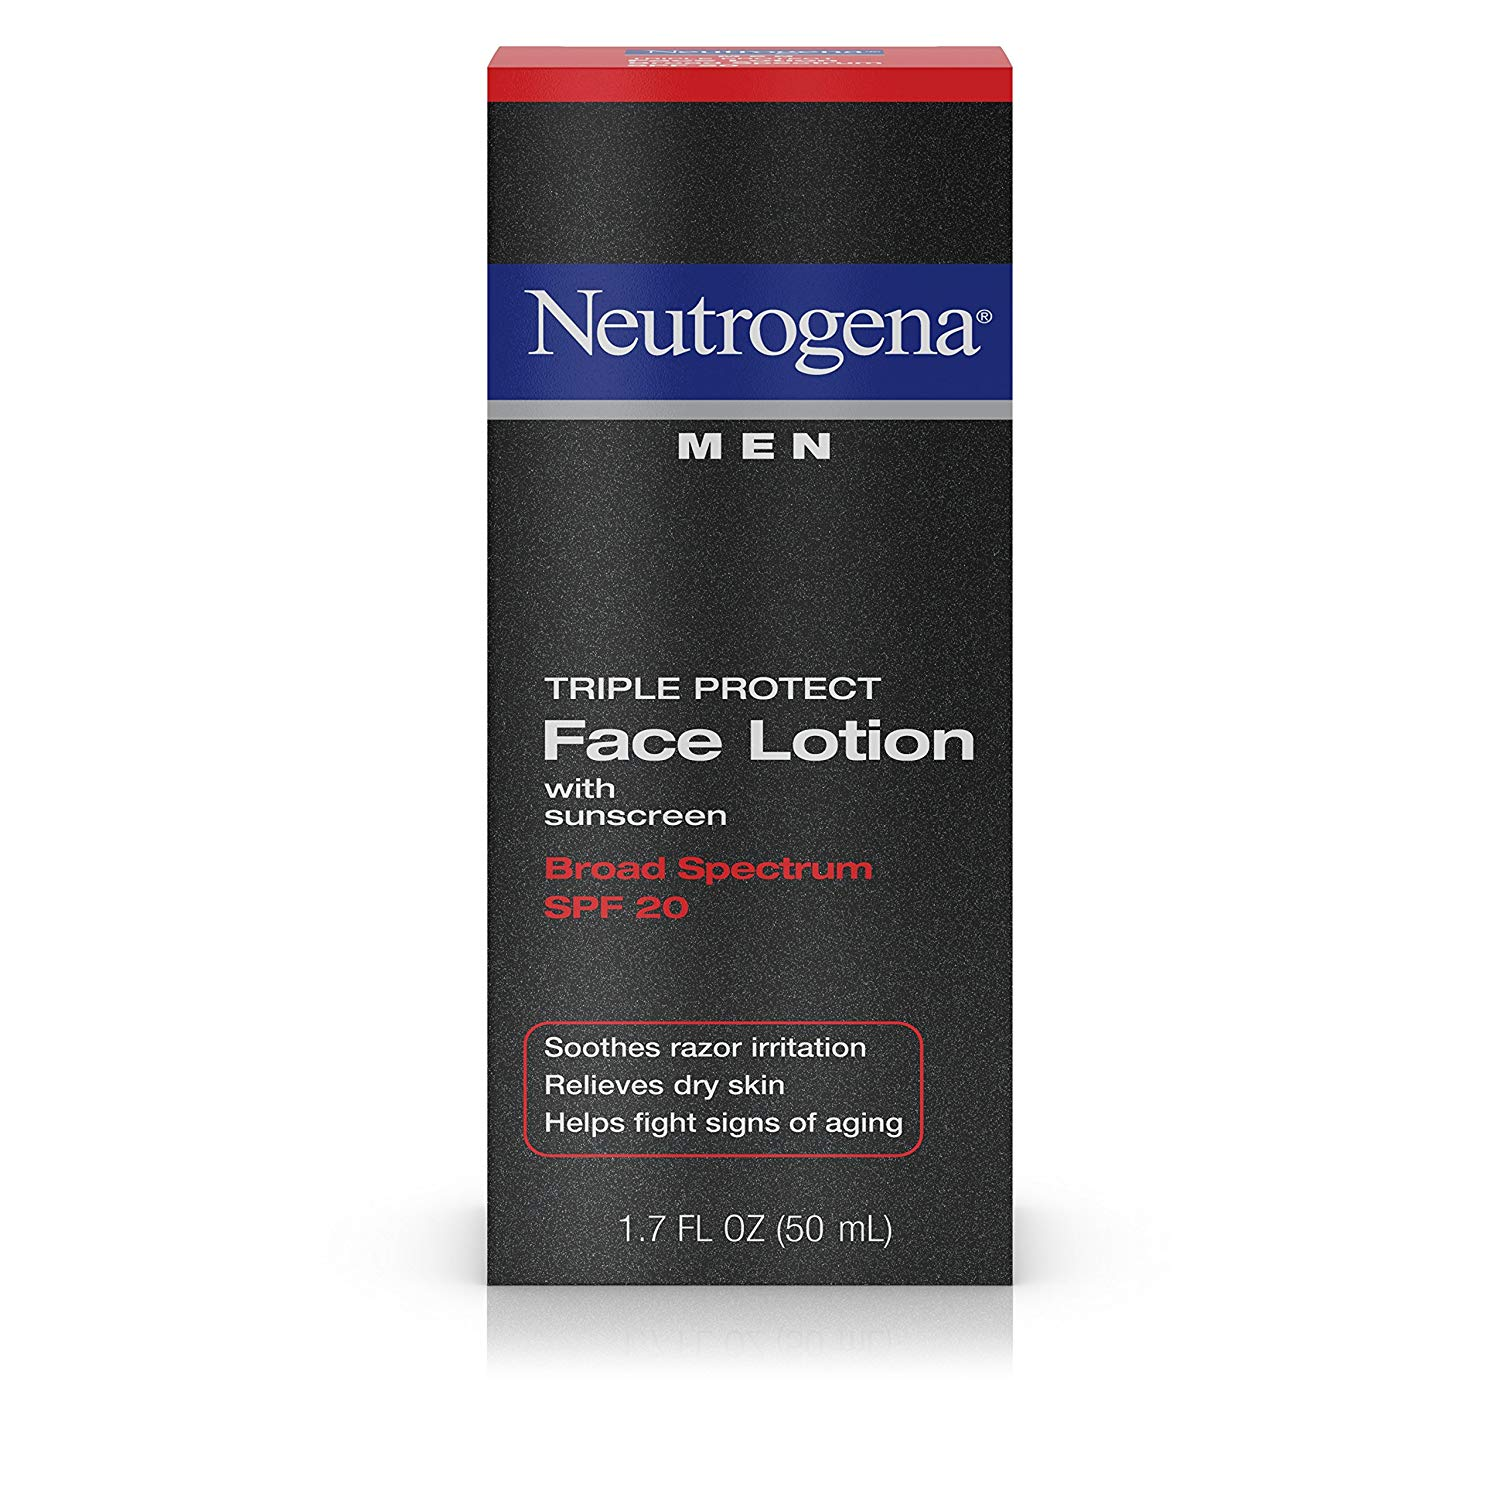 neutrogena triple threat men's moisturizer